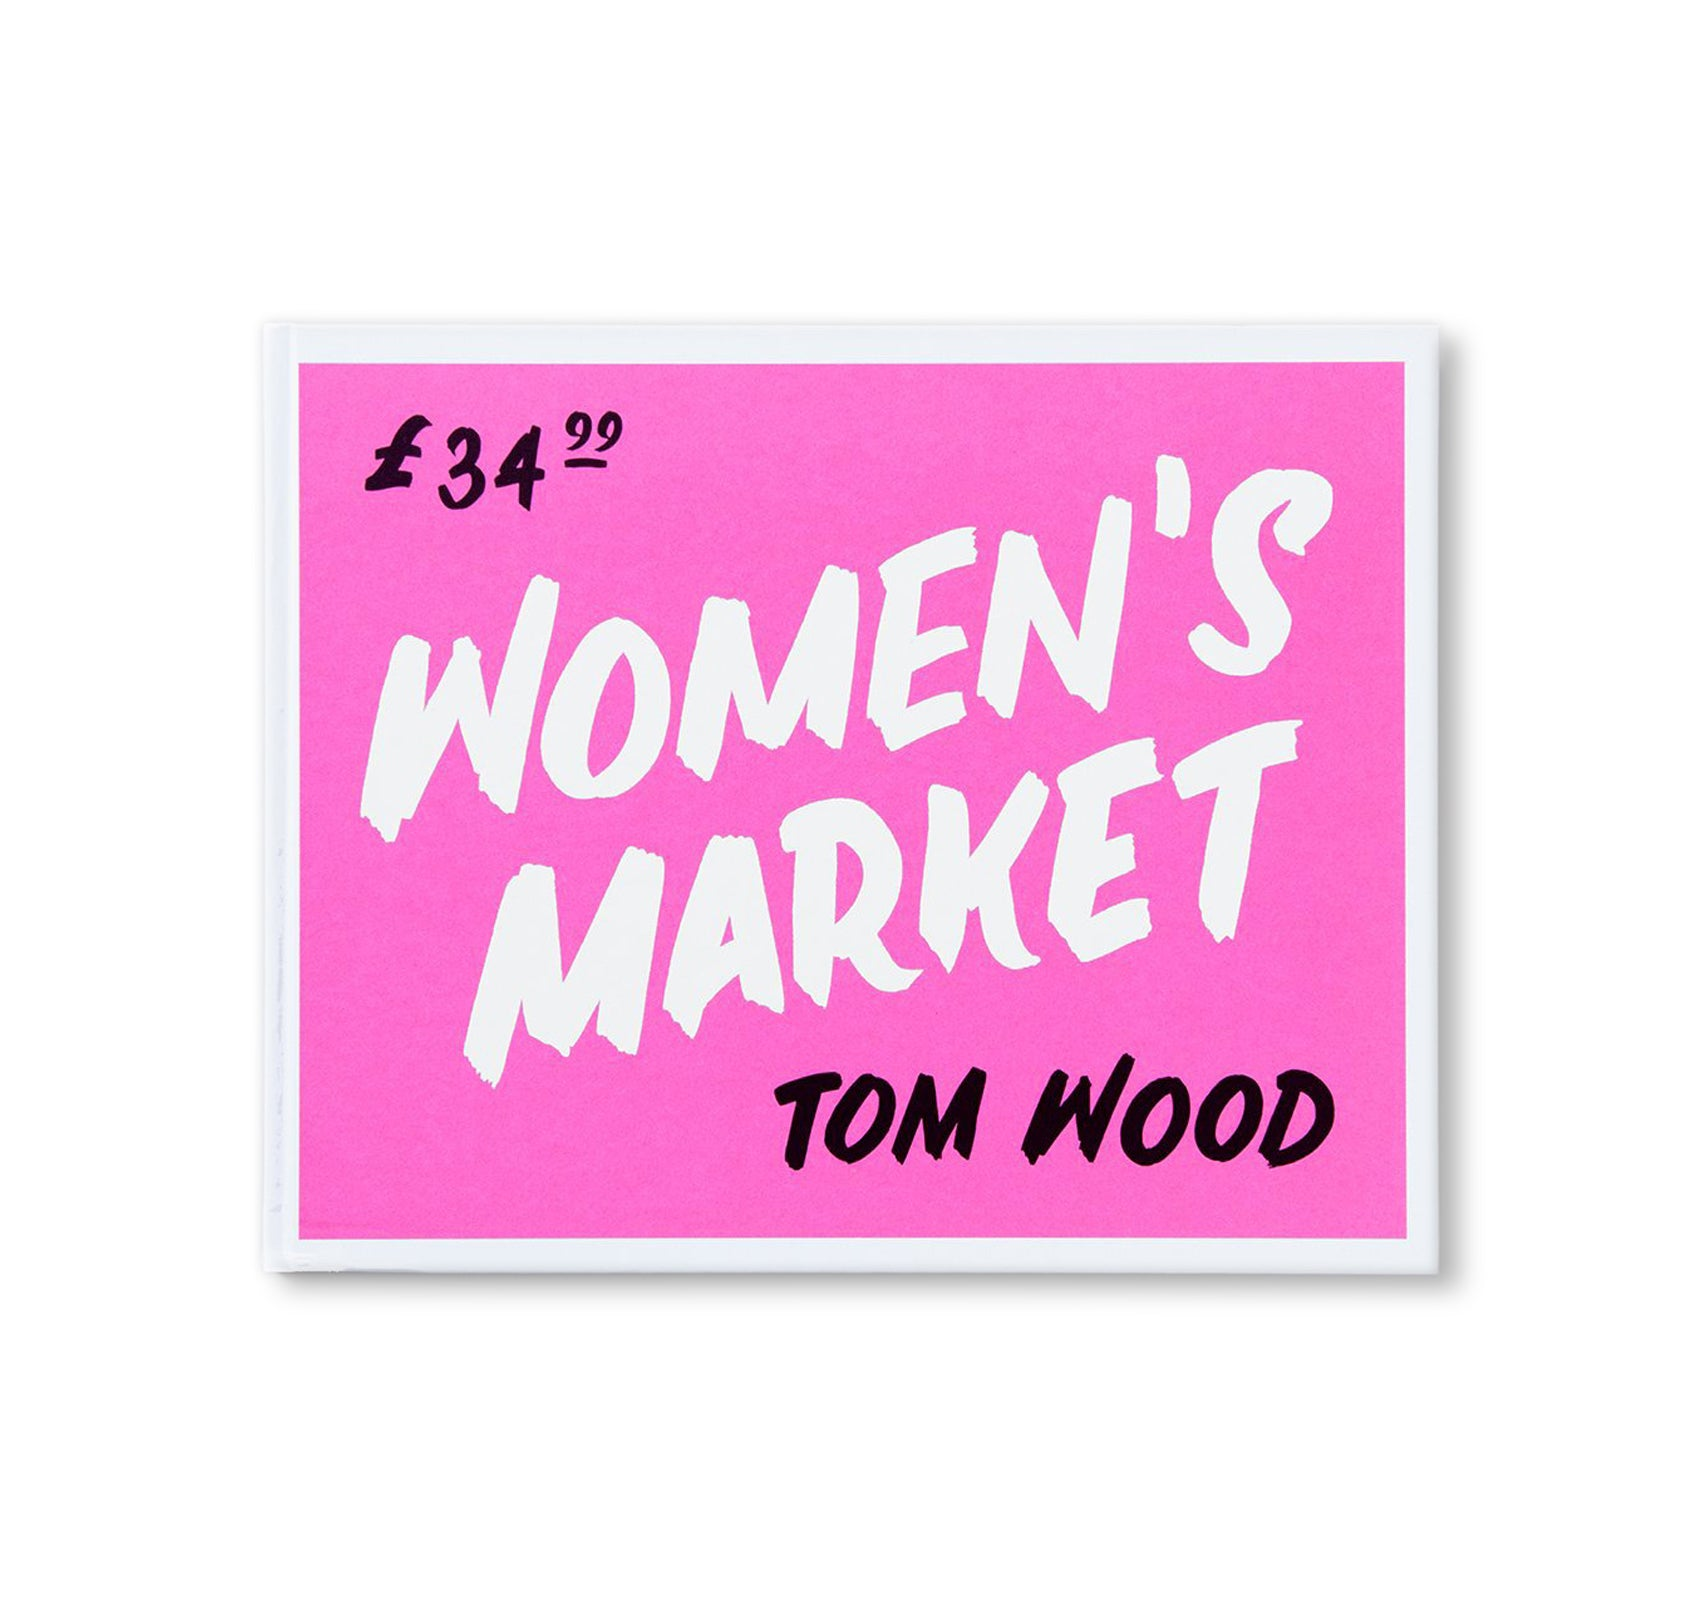 WOMEN'S MARKET by Tom Wood